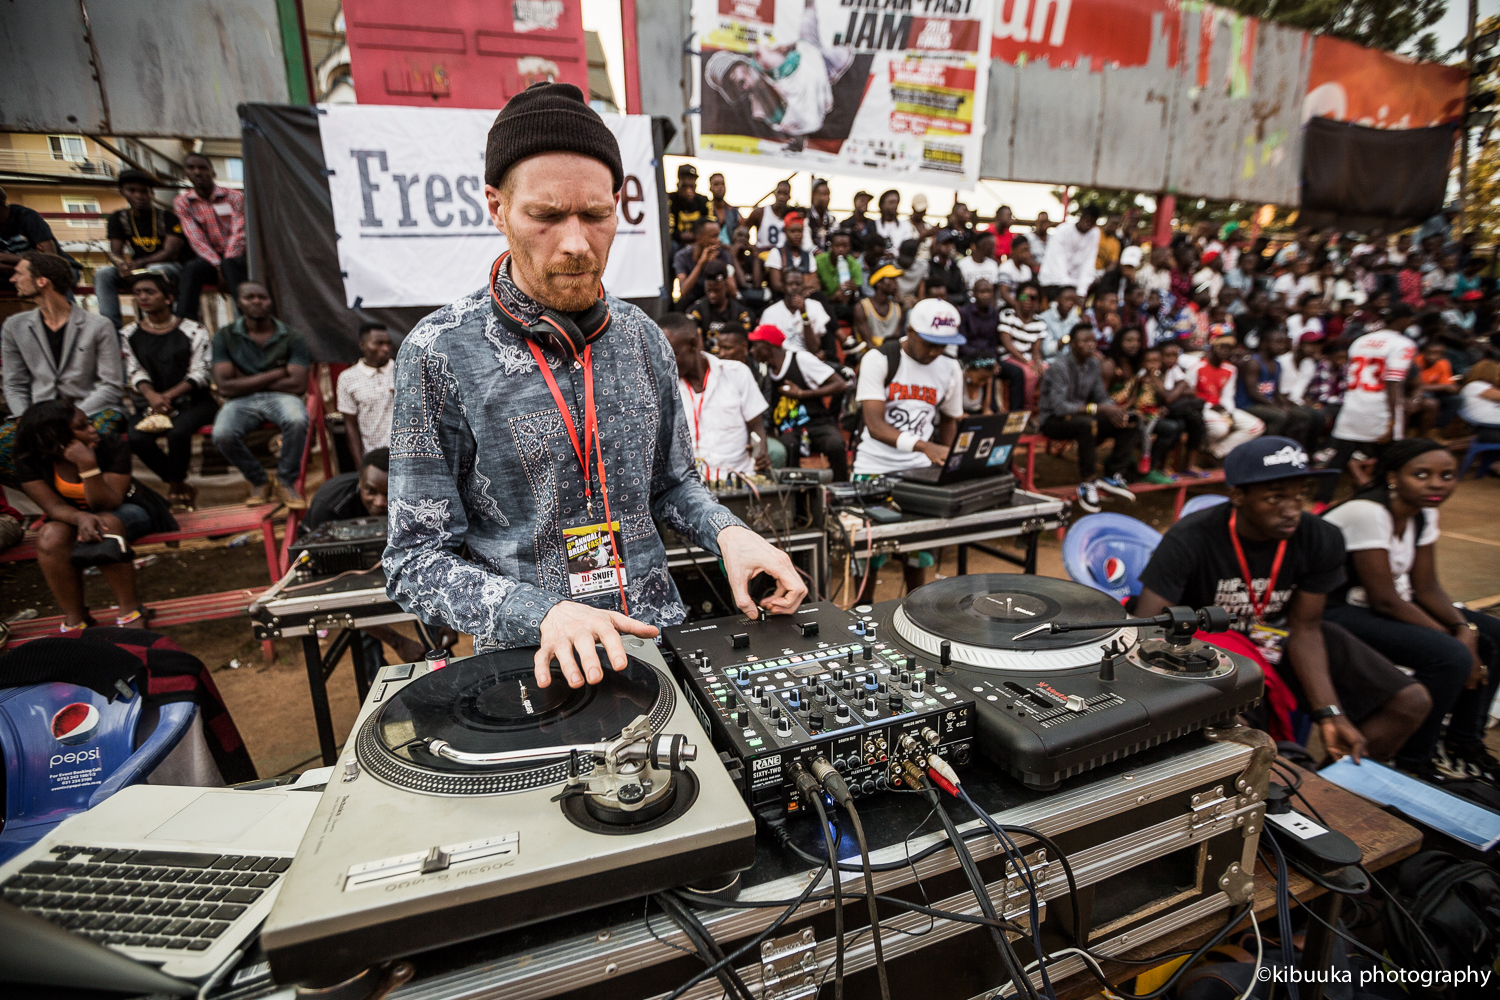 Dj-Snaff-from-uk-doing-what-he-does-best-at-the-event-photo